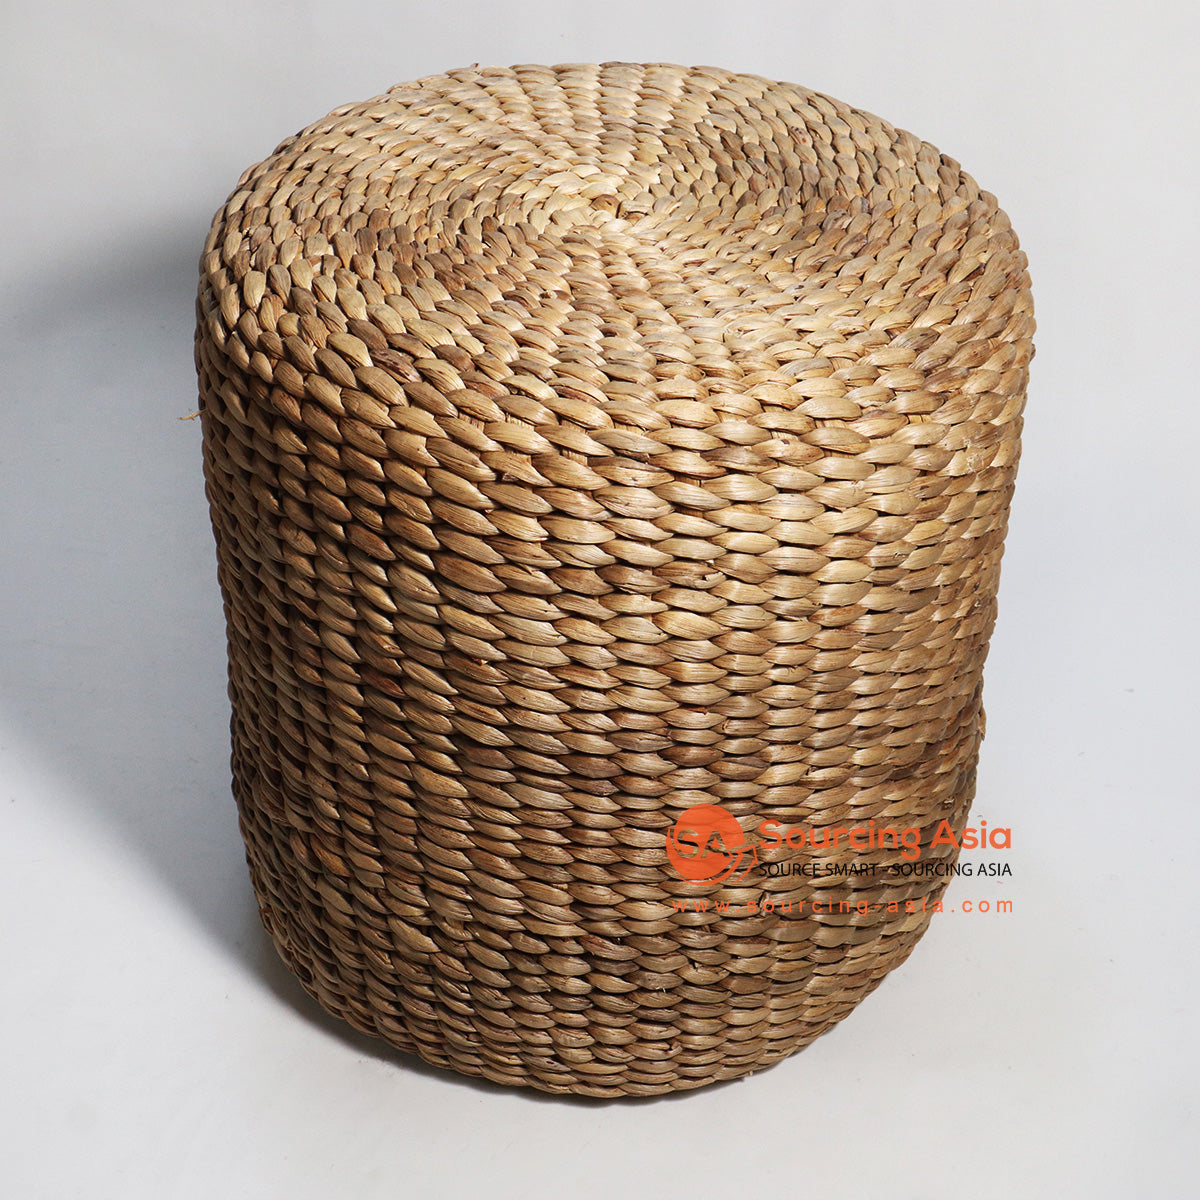 HBSC154 WATER HYACINTH STOOL